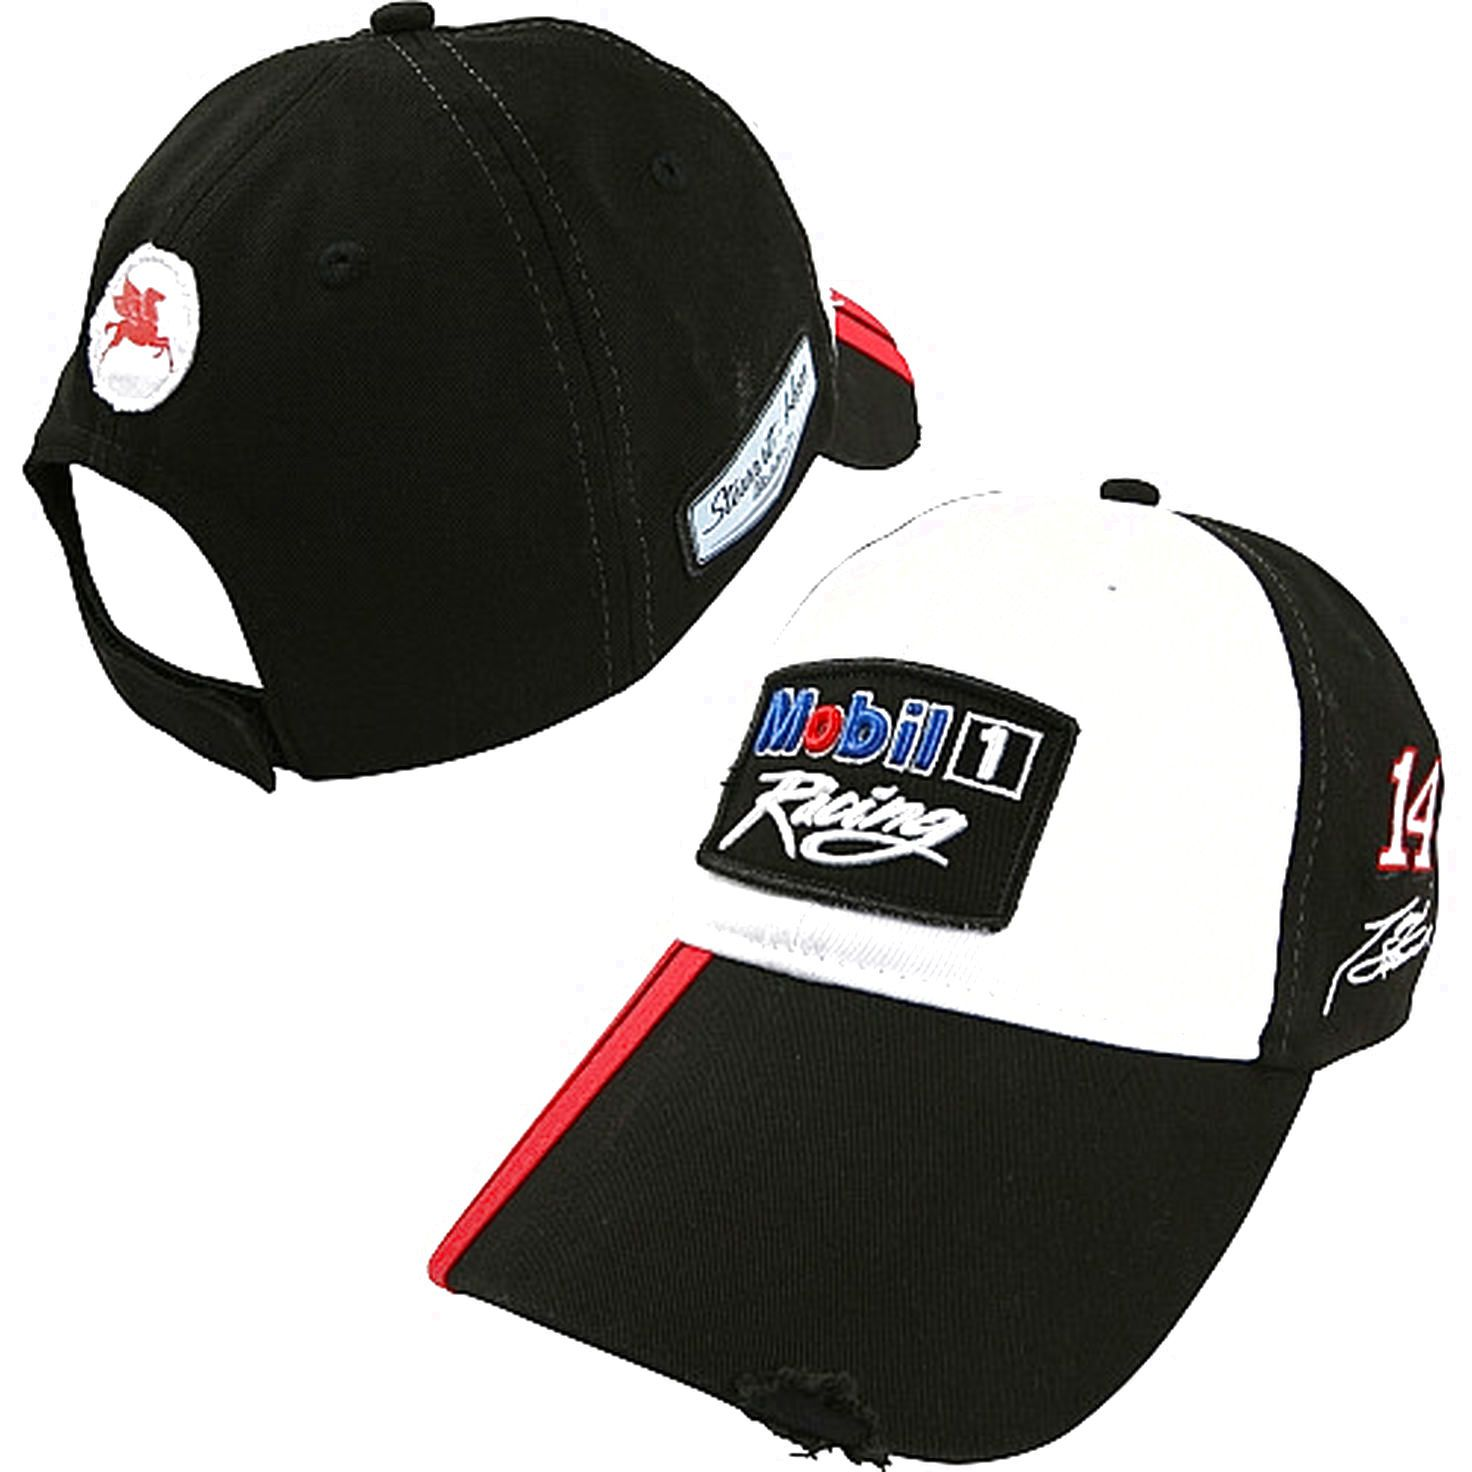 7ff34e4ddcd3b Chase Authentics Official Pit Cap Tony Stewart Mobil 1 -  14.99